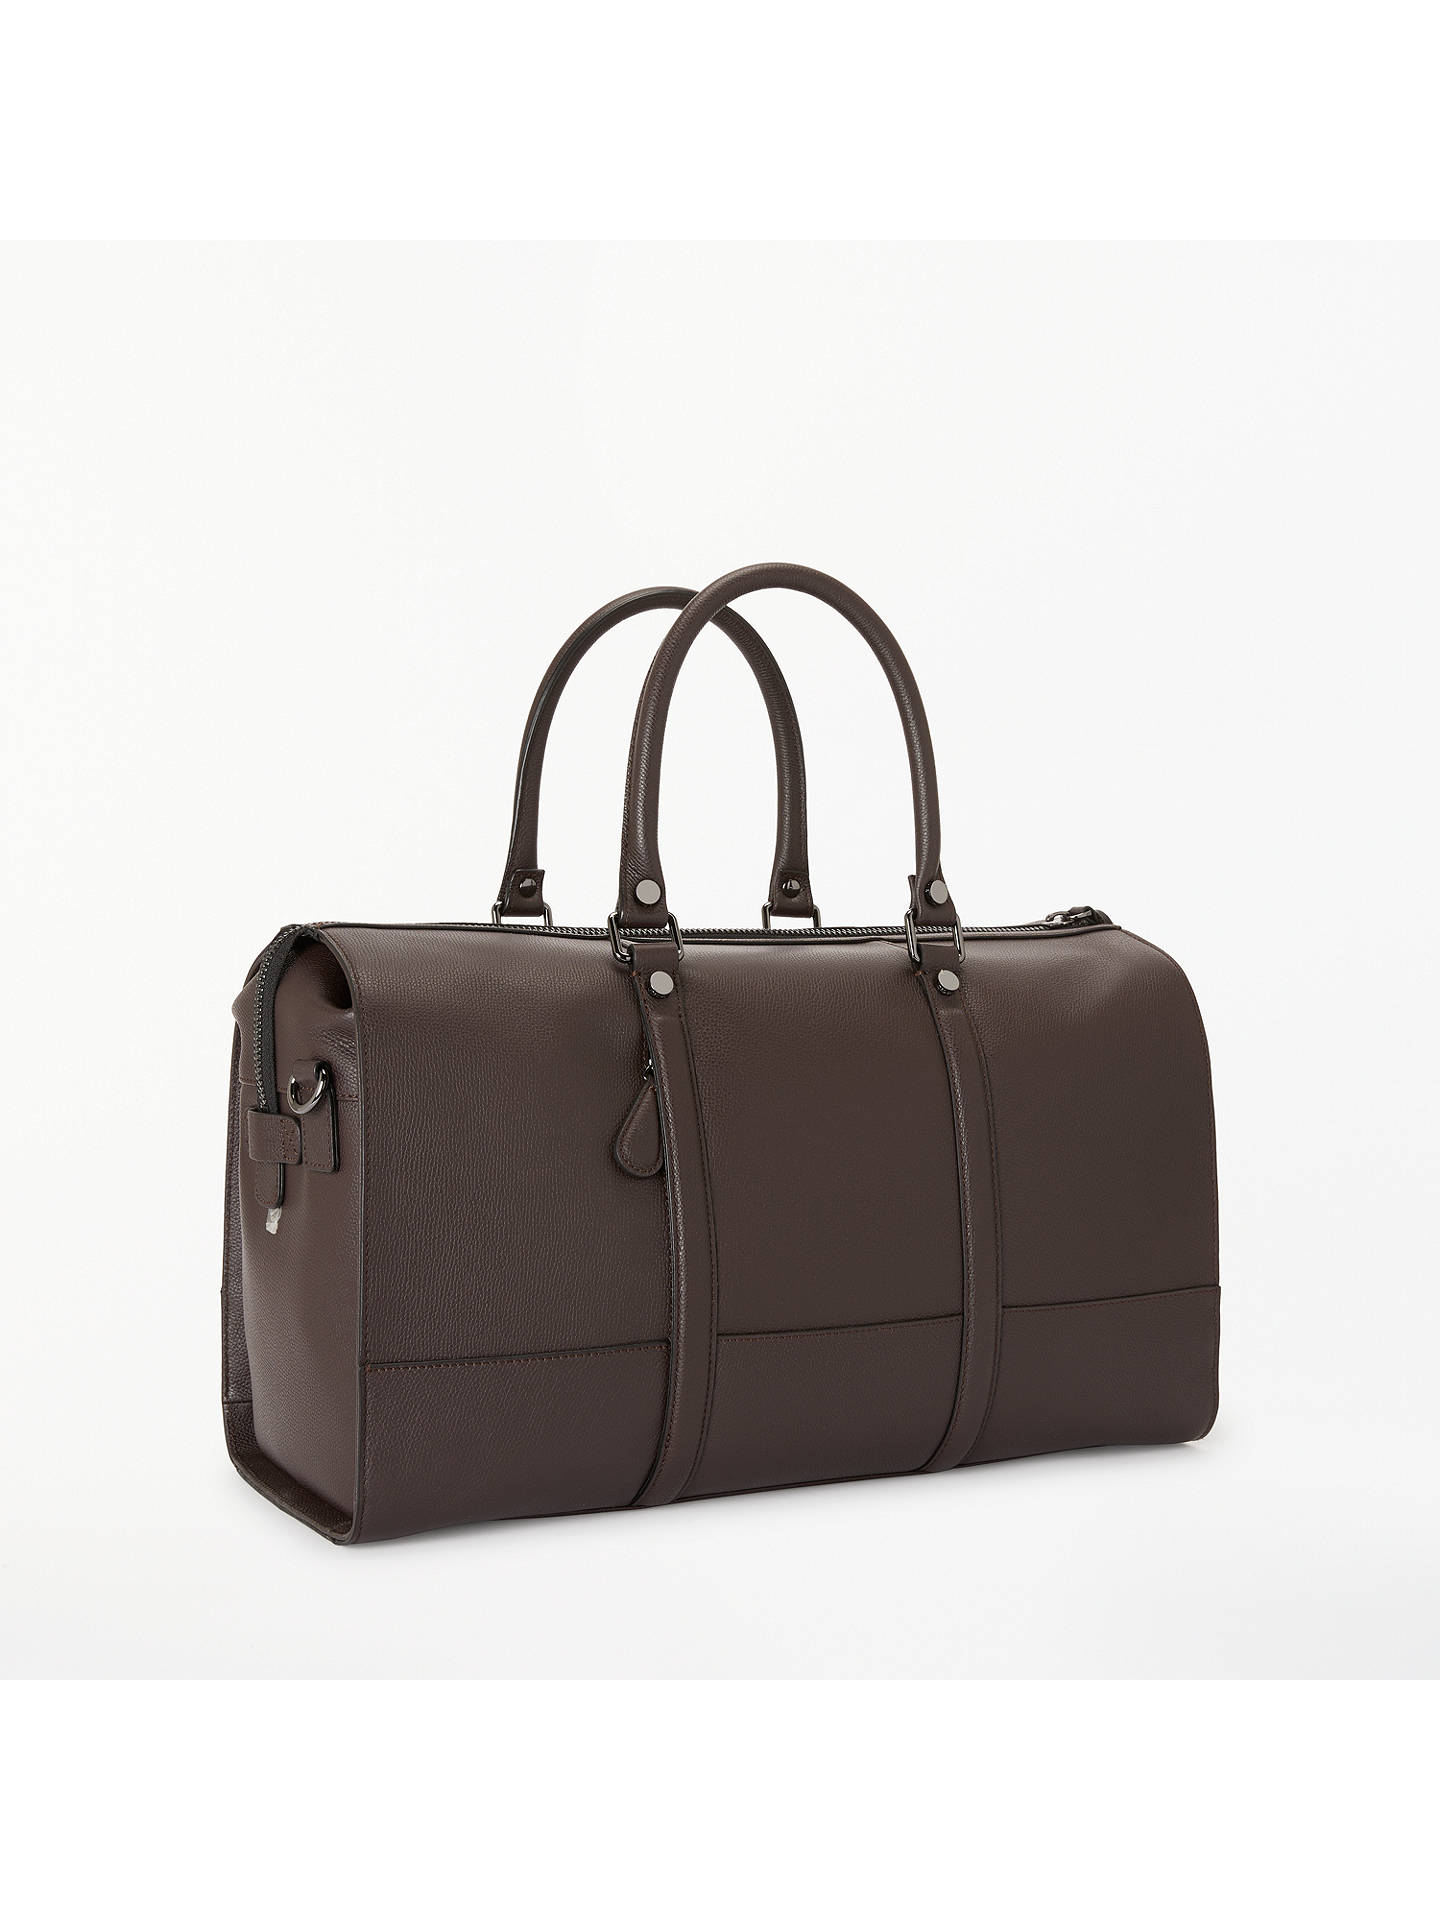 9ebf3e51efb8f ... Buy Ted Baker Radical Leather Holdall Bag